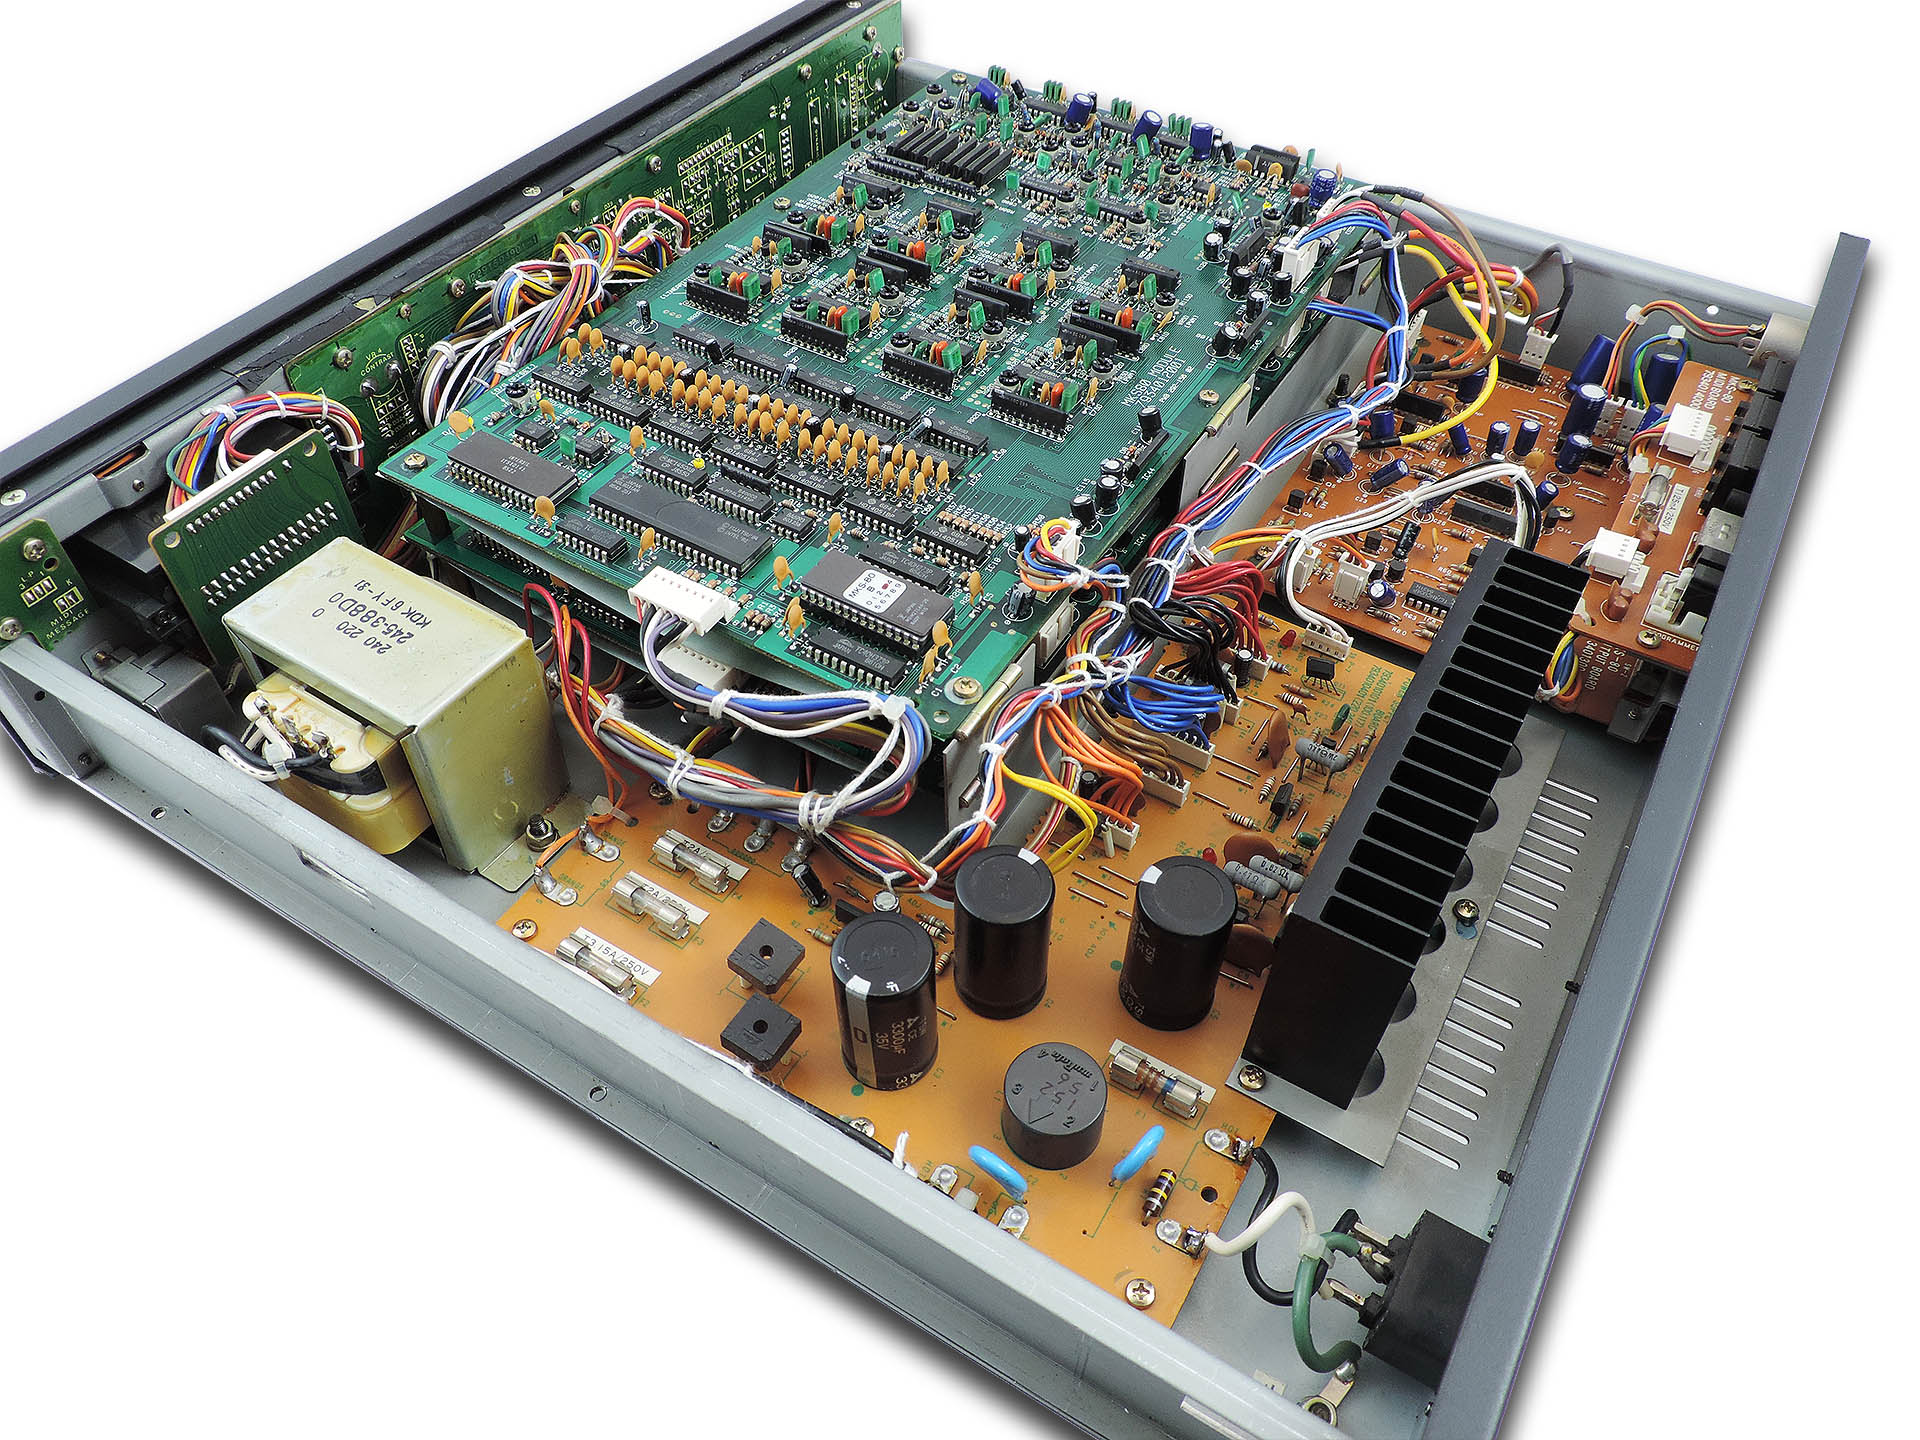 Inside the Roland MKS-80